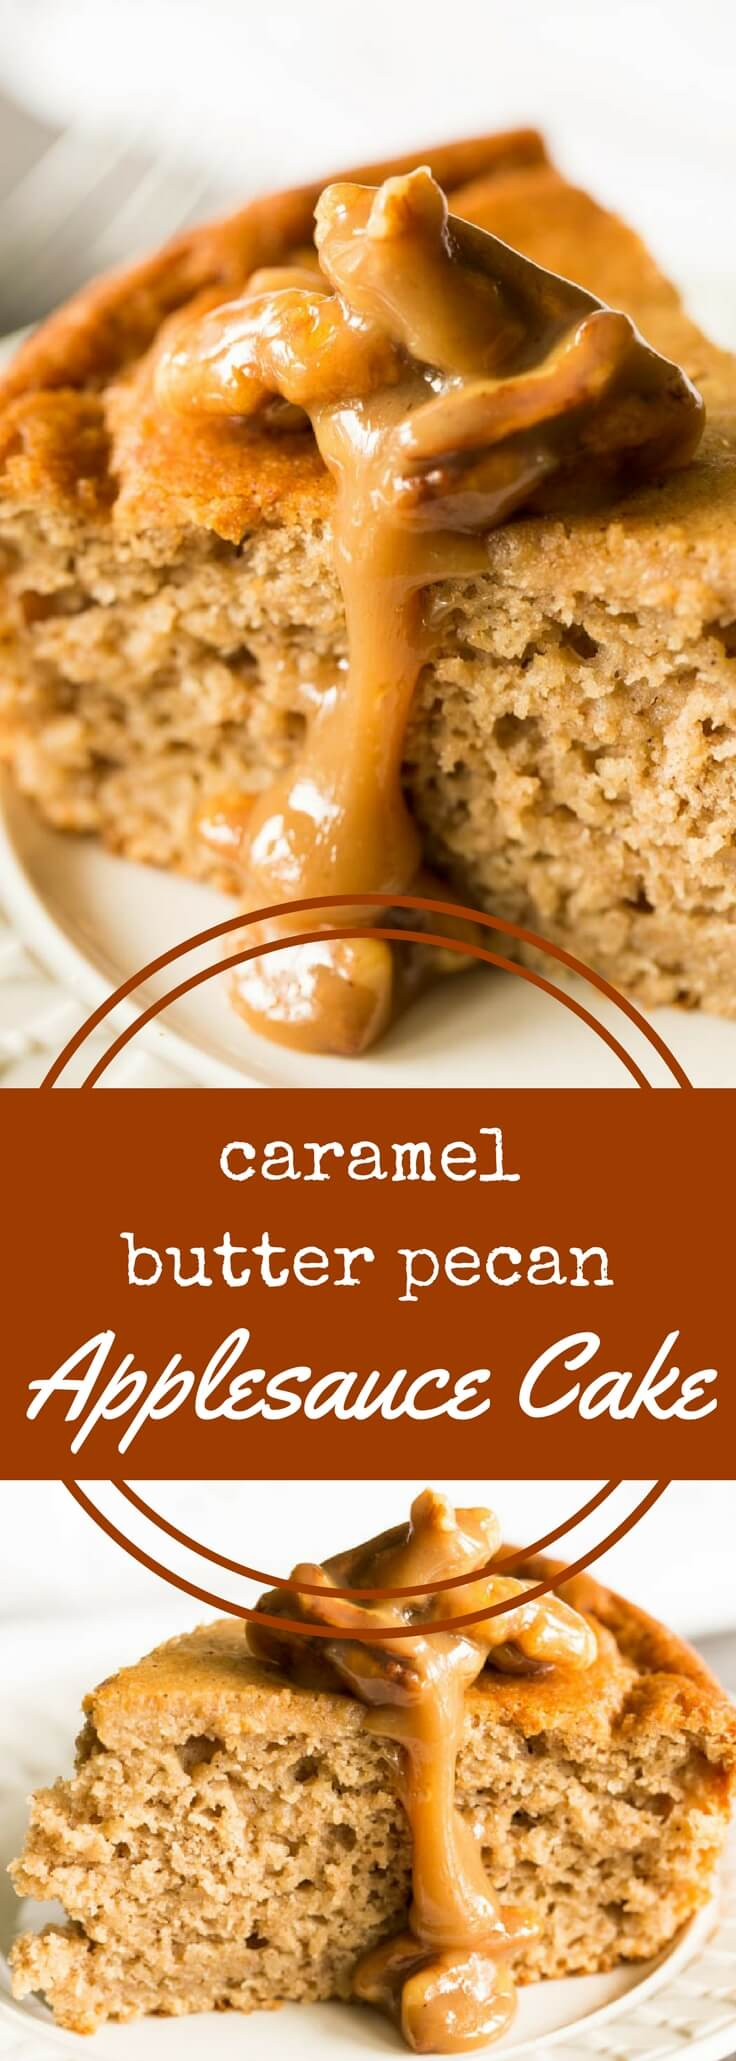 This spiced applesauce cake topped with gooey caramel butter pecan sauce is a must-have for fall and winter. It's delicious and completely gluten free.